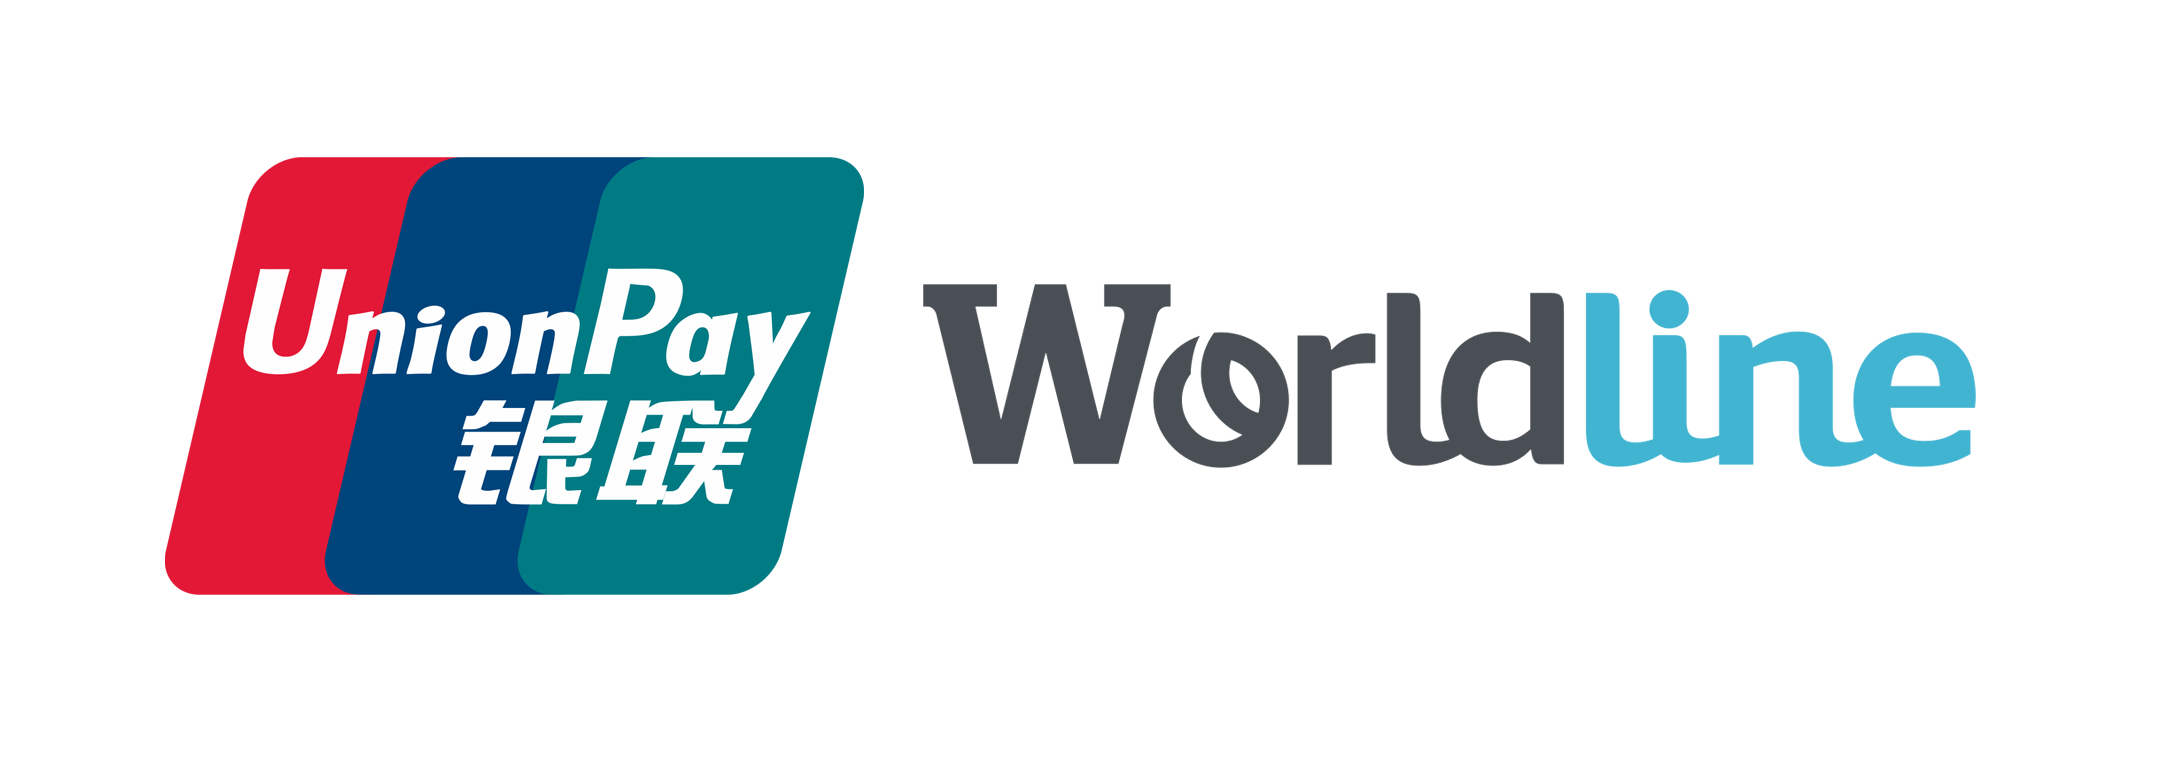 Worldline Enables UnionPay Acceptance in Nordic Countries, Activating Over 20,000 instore Merchants